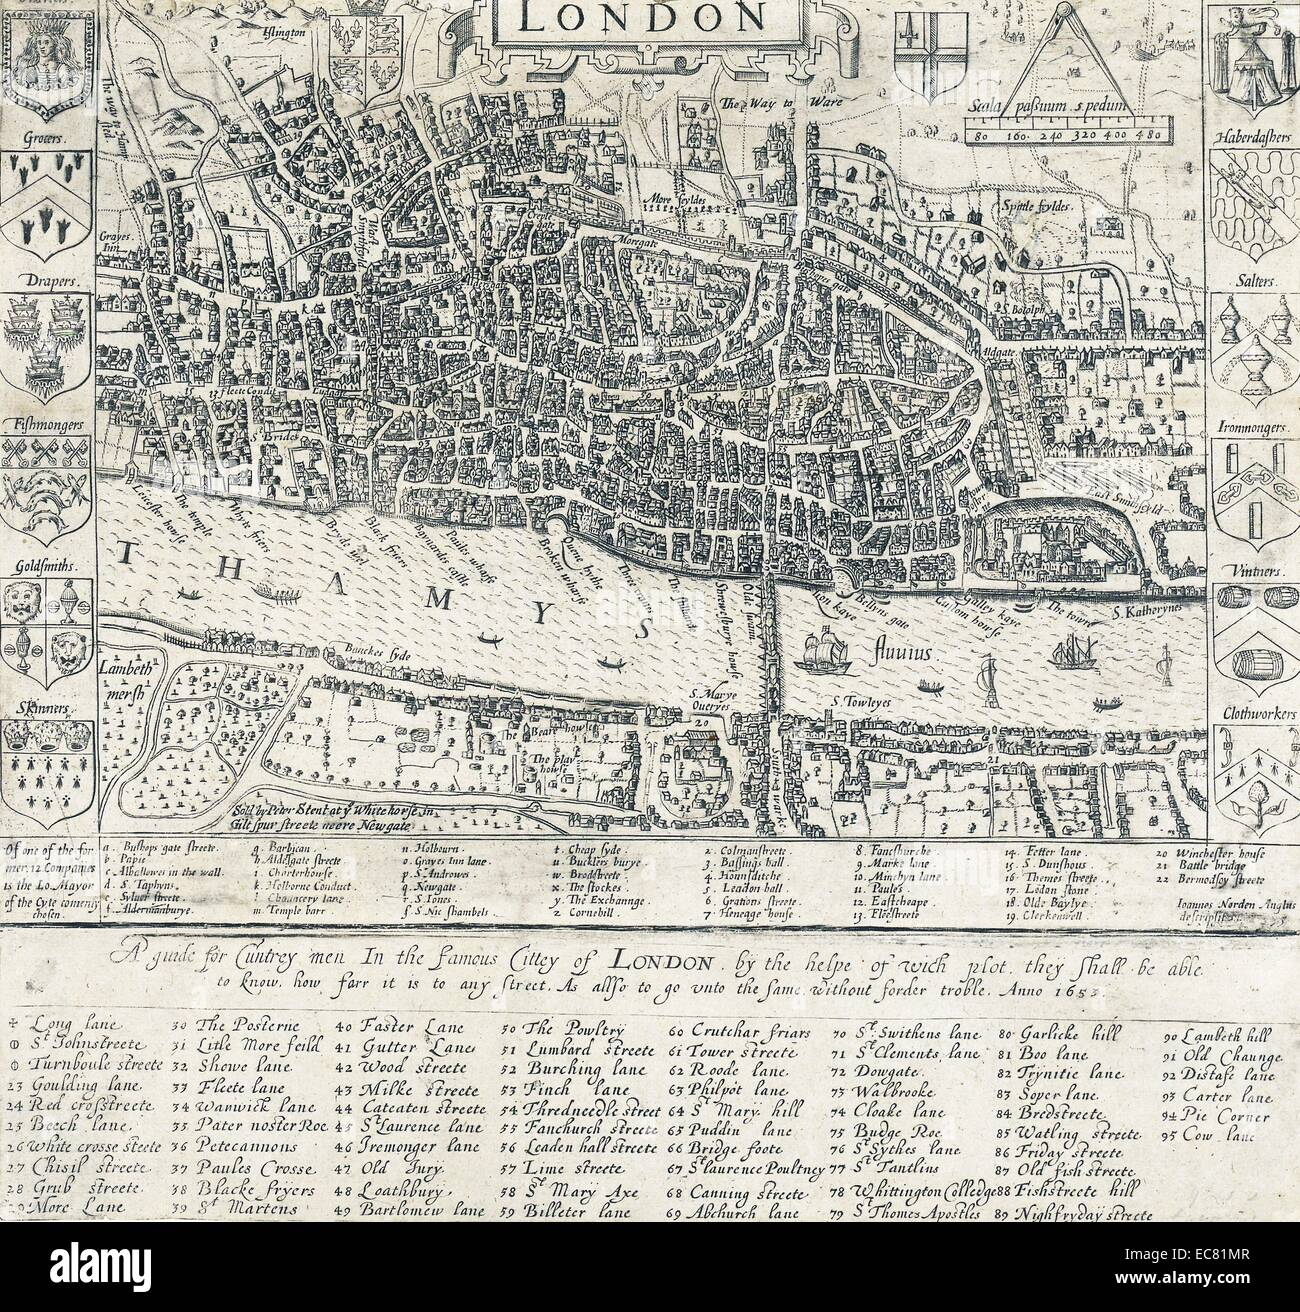 16th Century Map of London by John Norden (1548-1625)  English cartographer, chorographer and antiquary. Dated 1593 - Stock Image